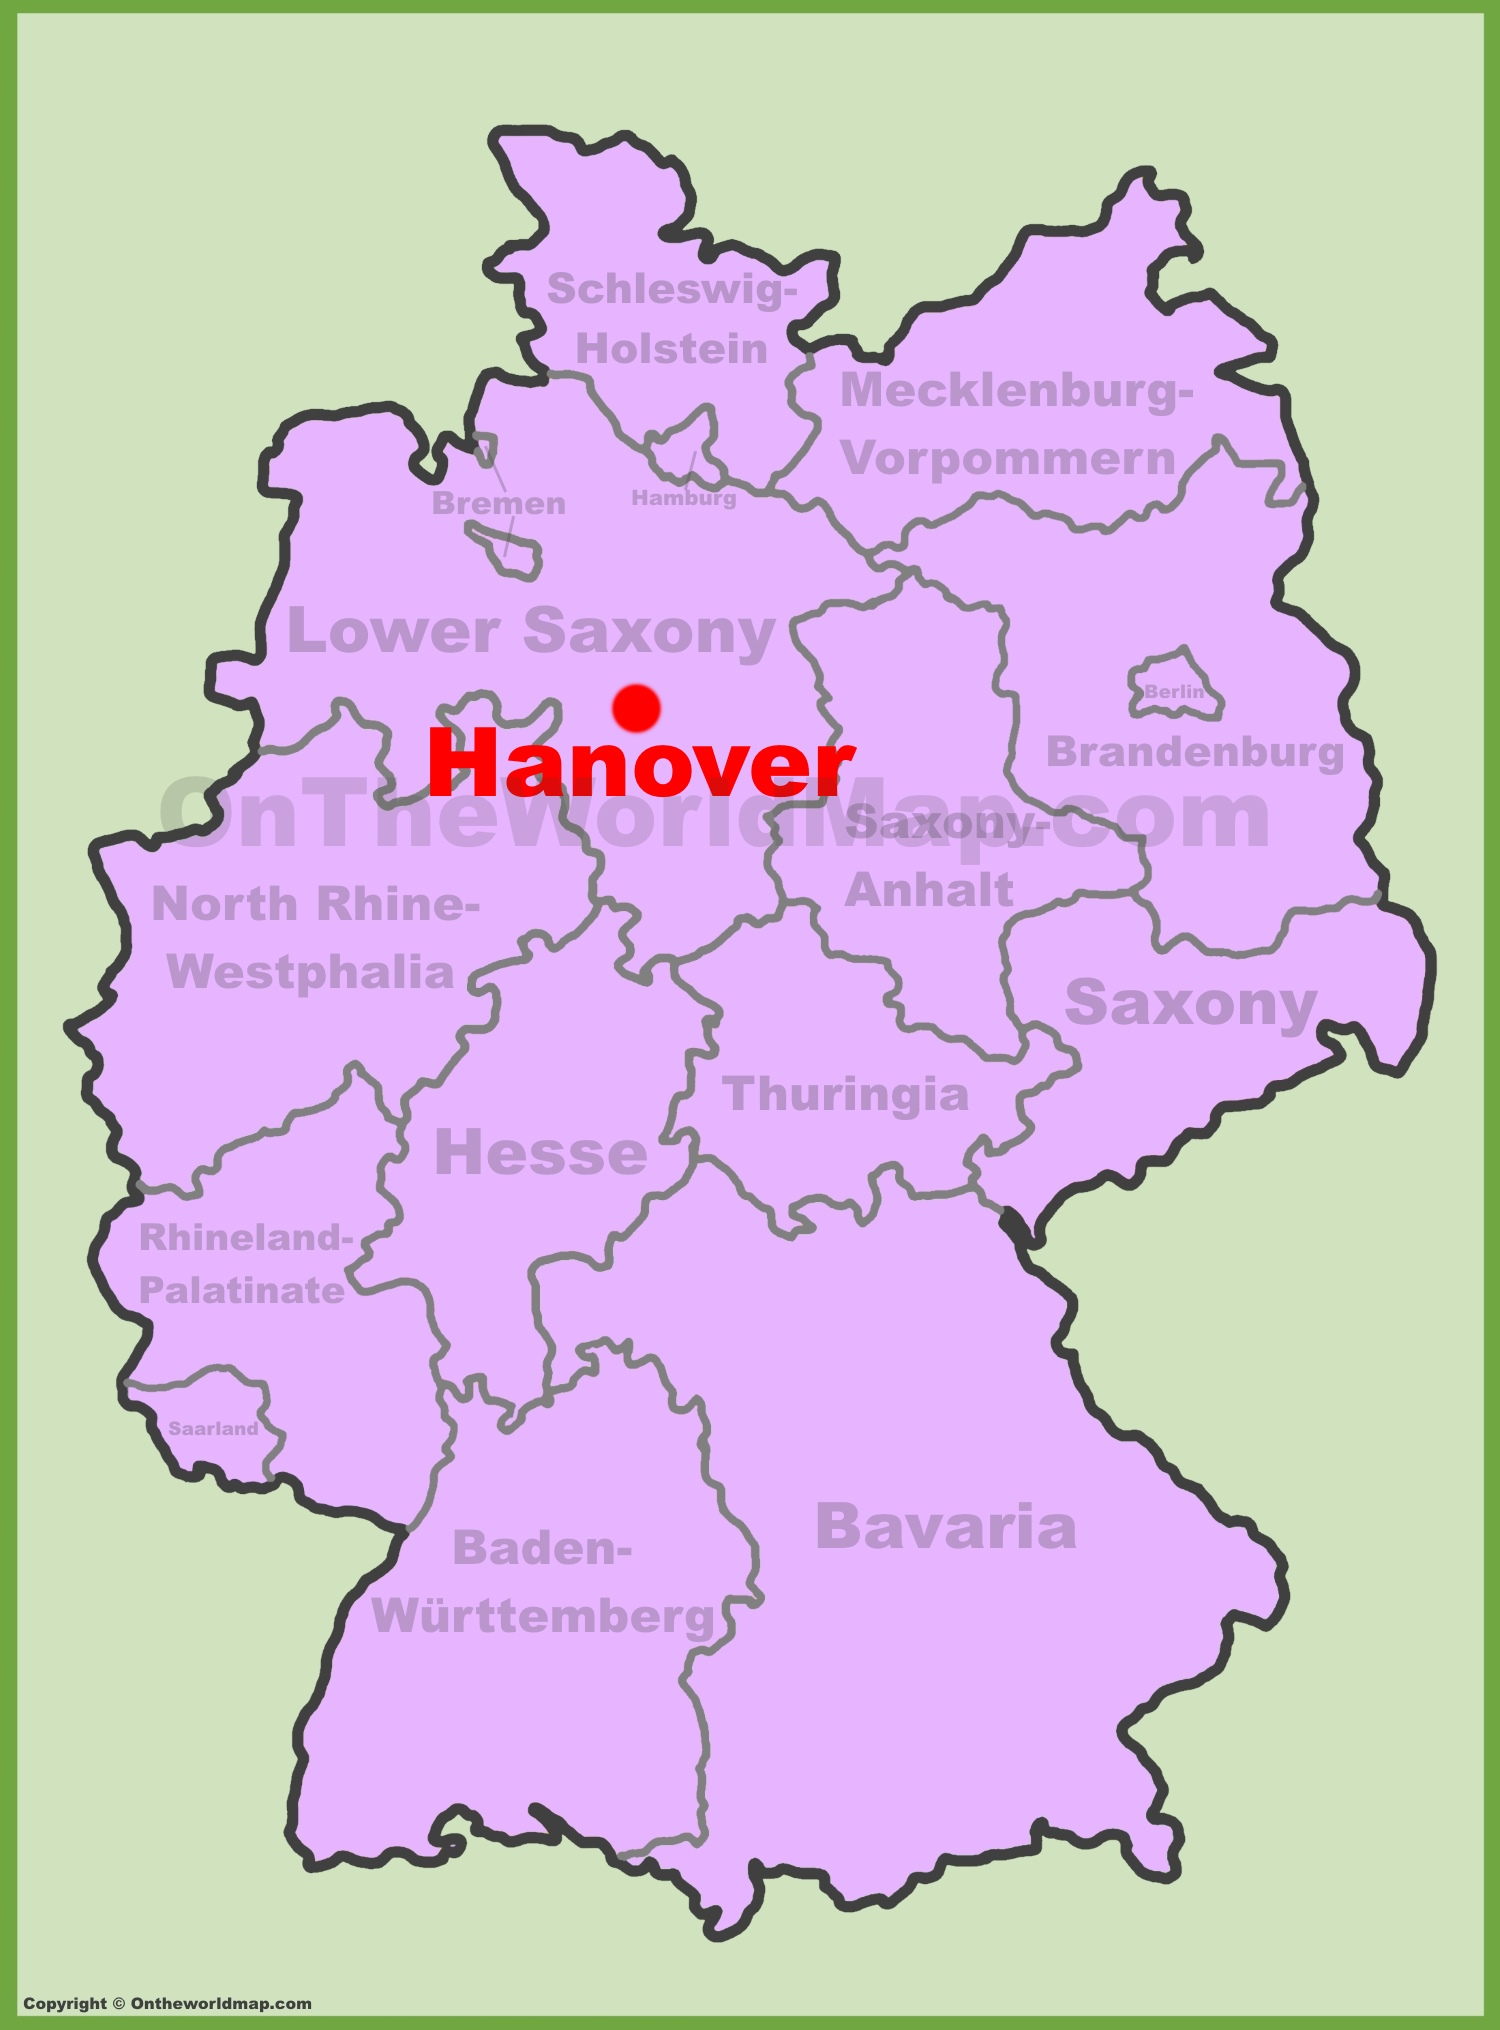 Hannover Germany Map Hannover Maps | Germany | Maps of Hannover (Hanover)